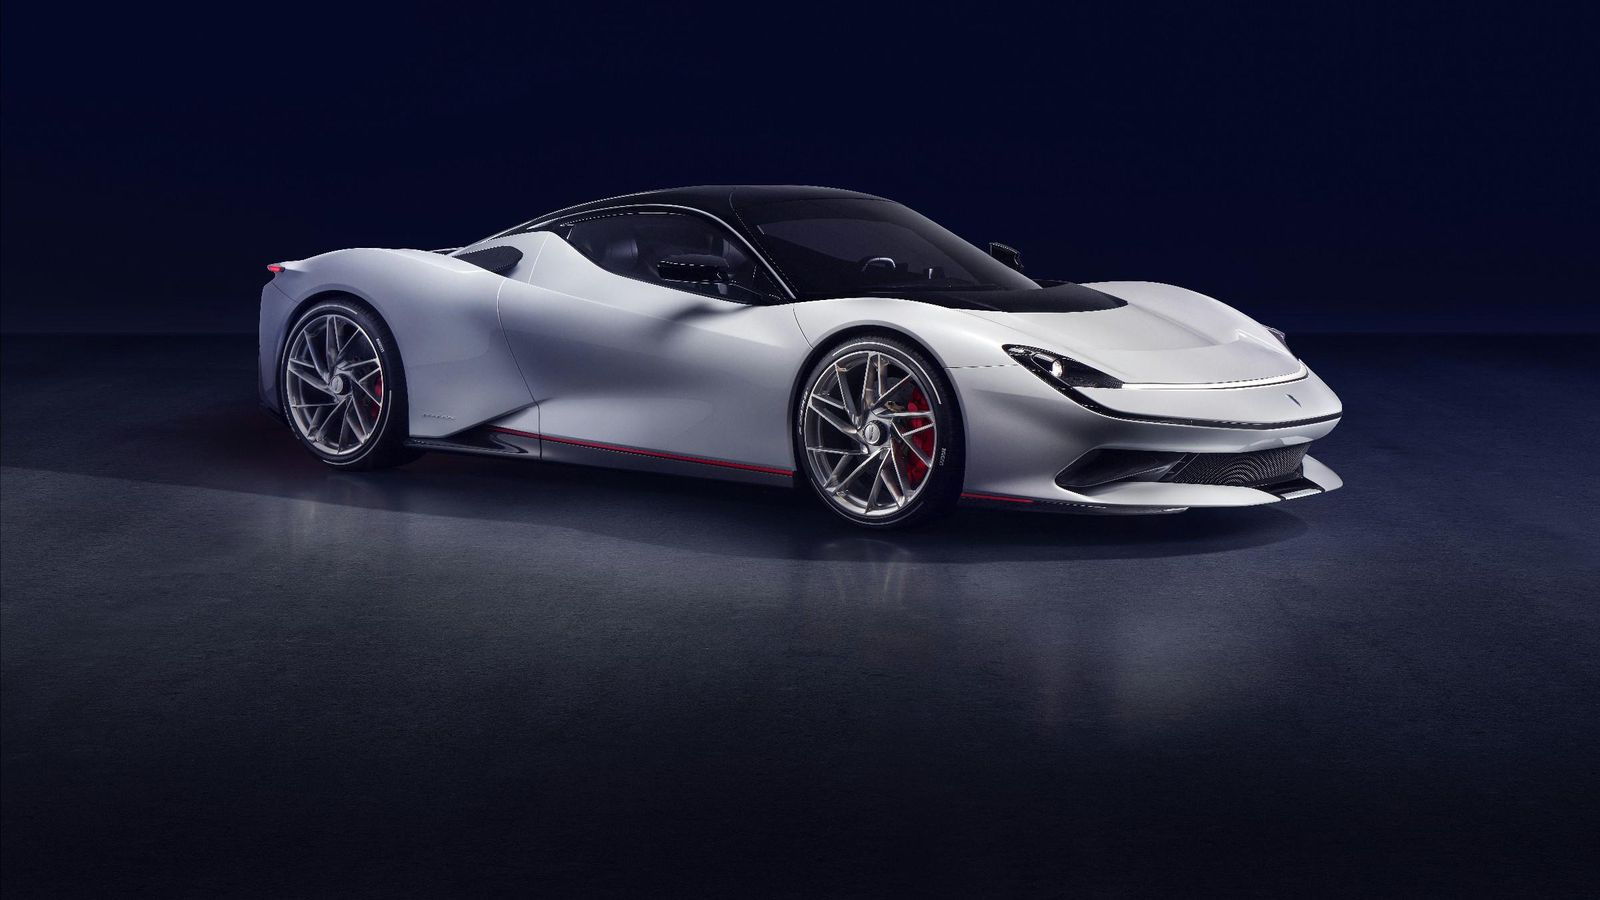 Awe-Inspiring Electric Hypercar $2.5 Million Pininfarina Battista, Faster Than a Fighter Jet Unveiled